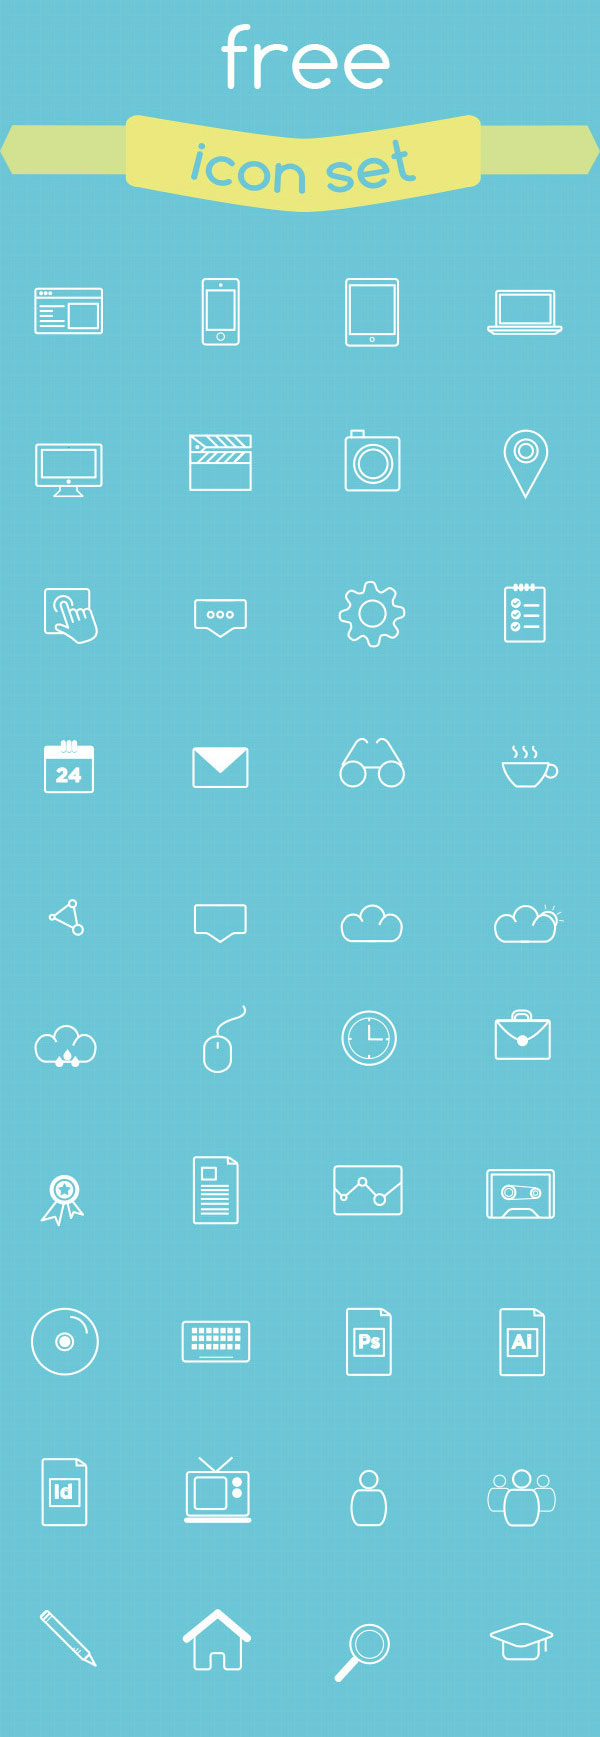 PAGE - Free Vector Icon Set